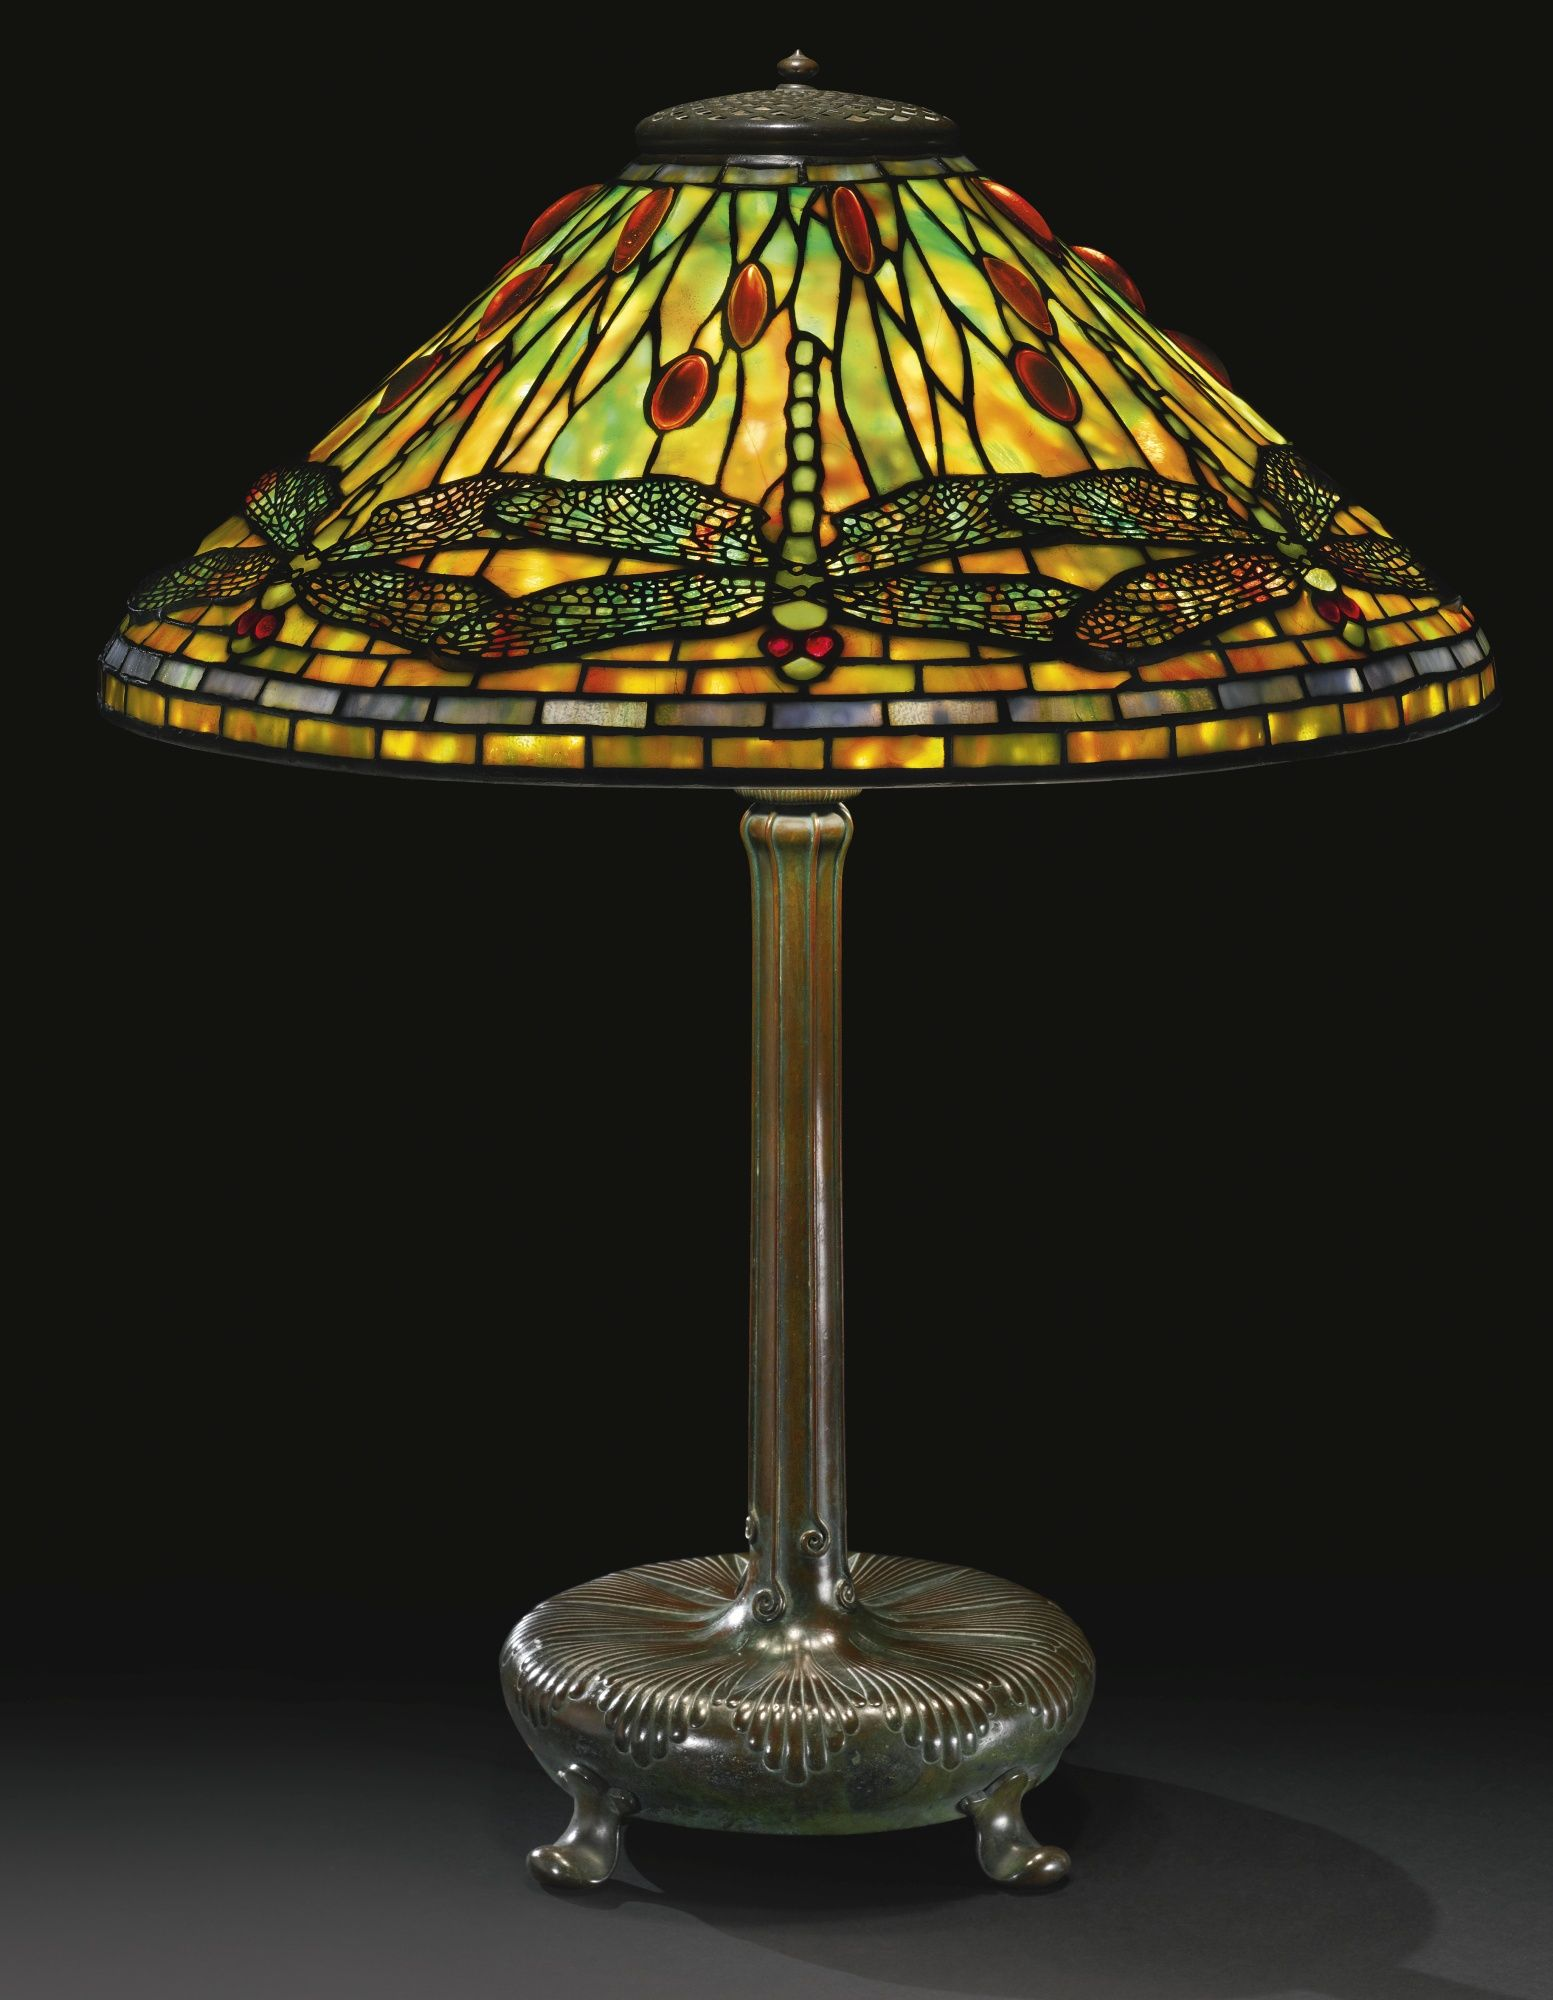 """TIFFANY STUDIOS """"DRAGONFLY"""" TABLE LAMP (leaded glass and patinated bronze, c. 1910)"""